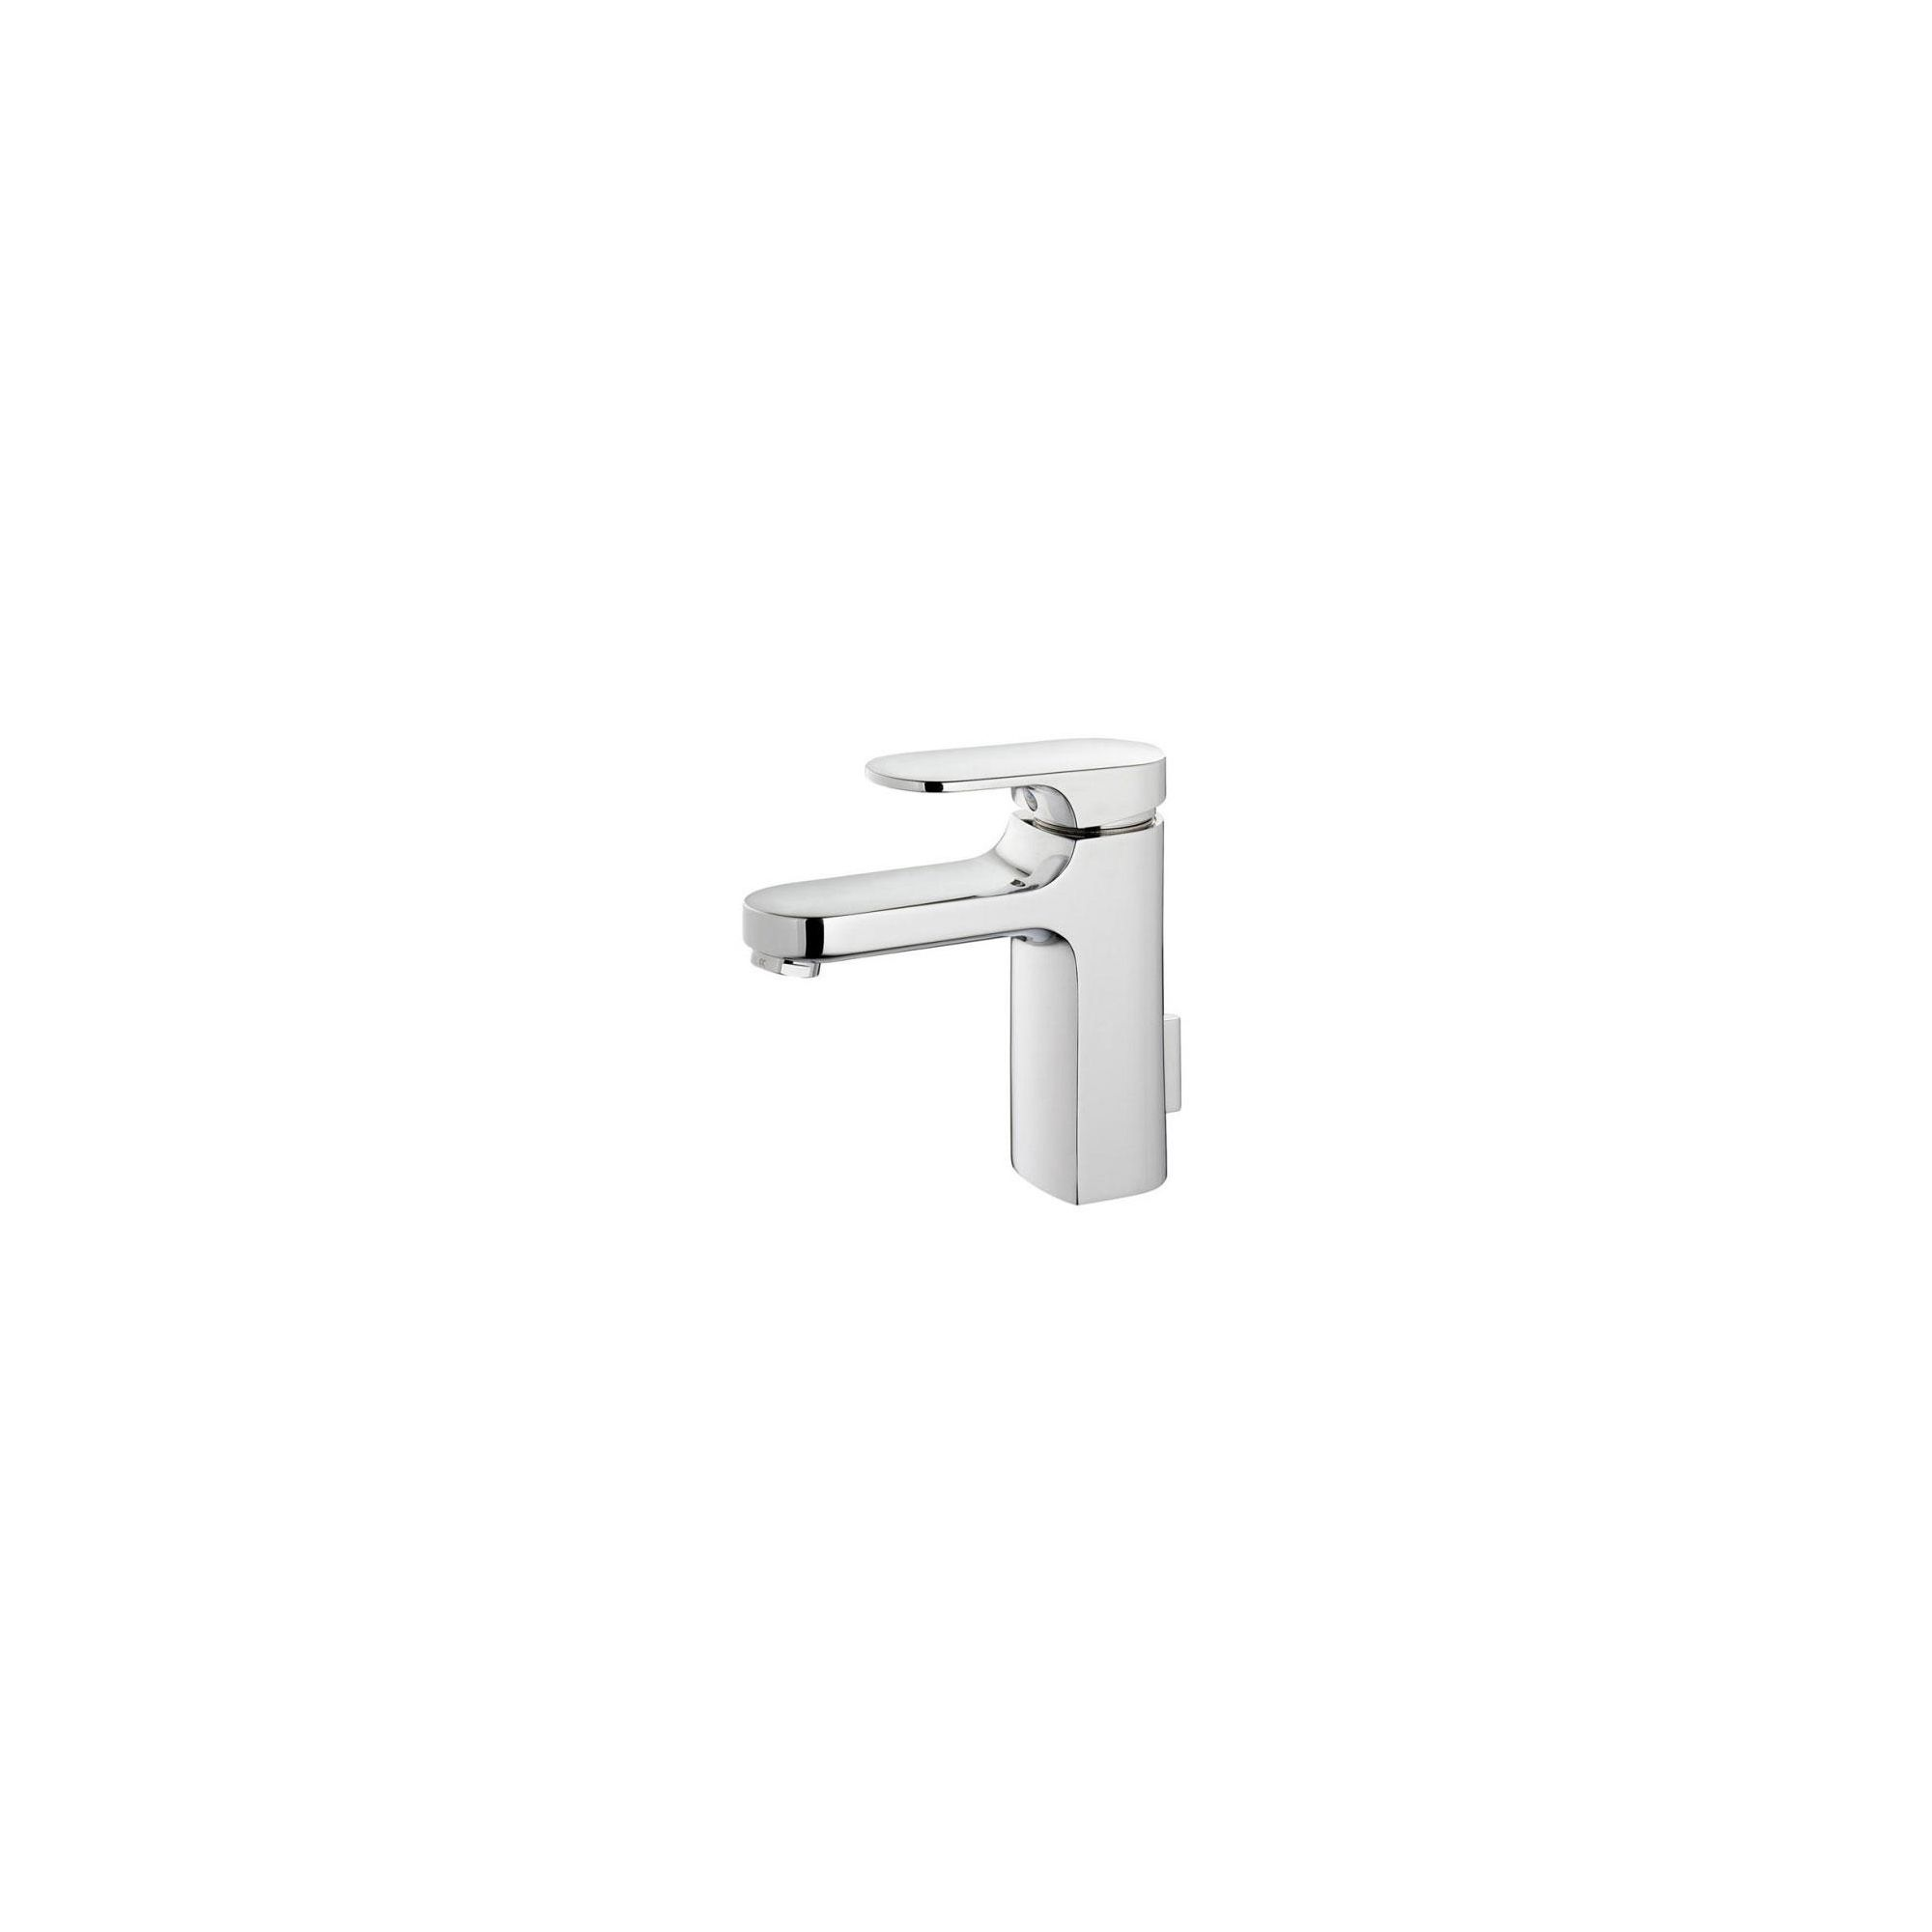 Ideal Standard Moments Standard Mono Basin Mixer Tap Chrome including Pop-Up Waste at Tescos Direct